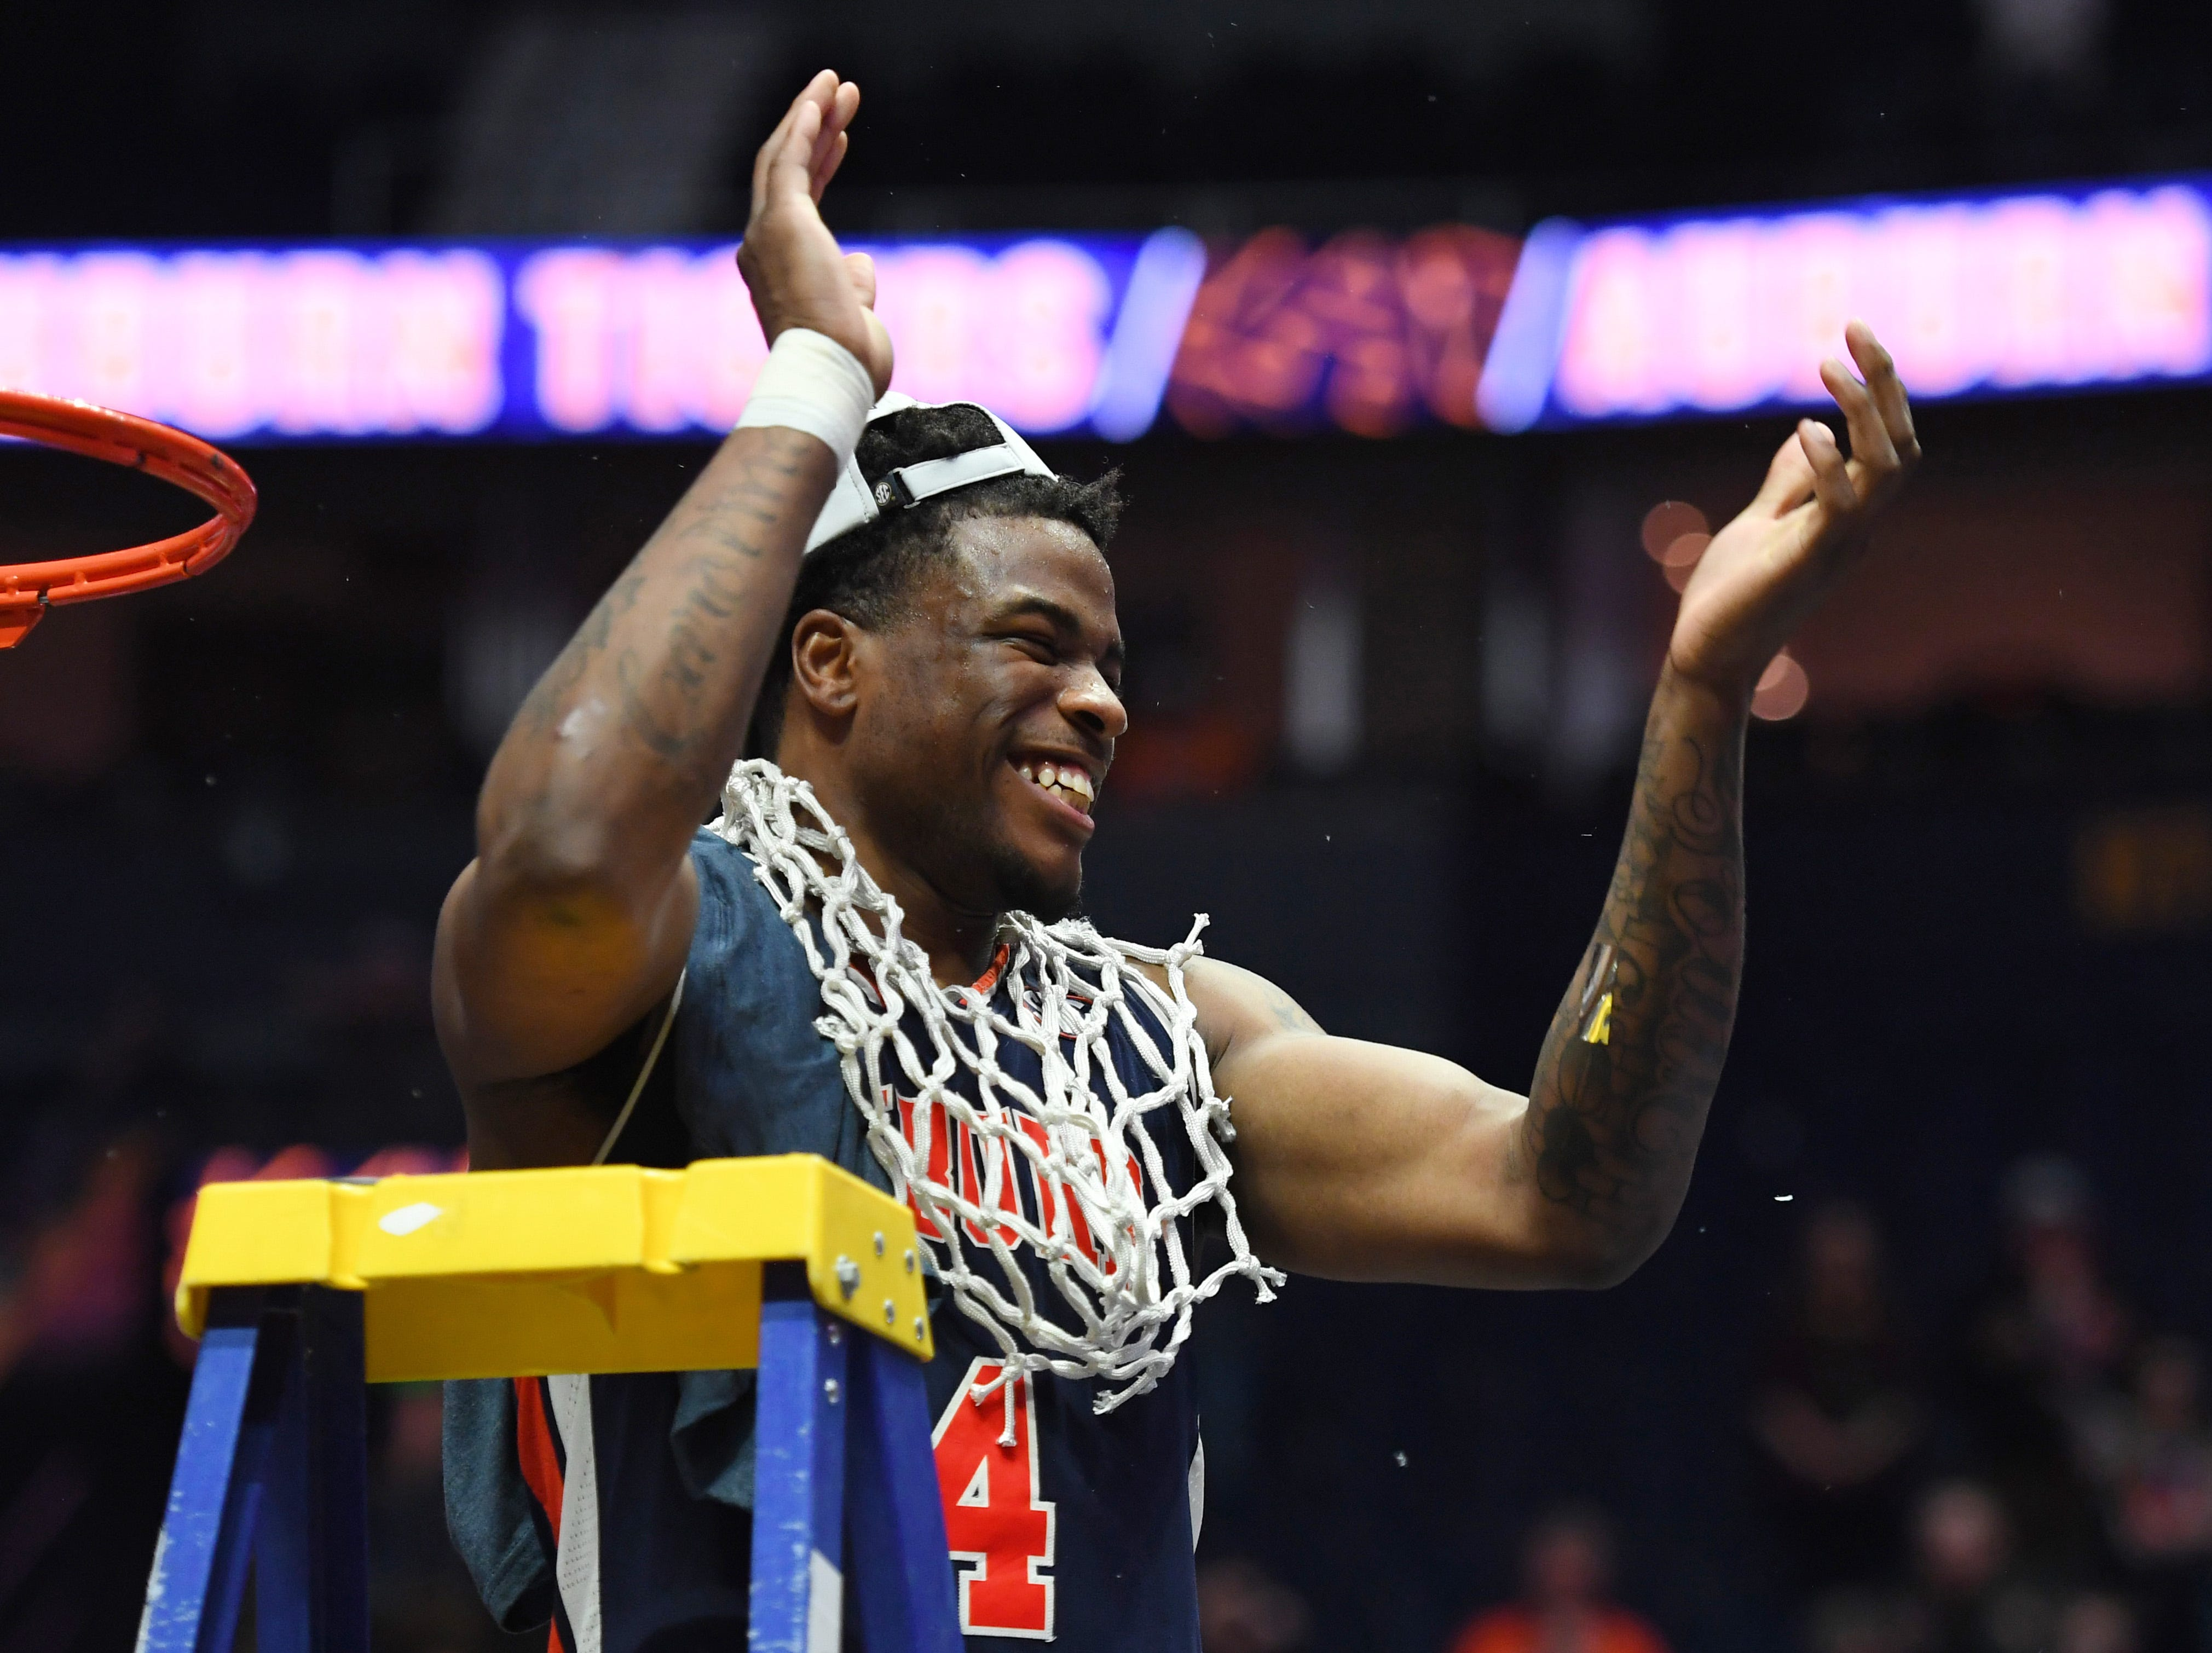 Mar 17, 2019; Nashville, TN, USA; Auburn Tigers guard Malik Dunbar (4) celebrates as he cuts down the nets after beating the Tennessee Volunteers in the SEC conference tournament championship game at Bridgestone Arena. Mandatory Credit: Christopher Hanewinckel-USA TODAY Sports